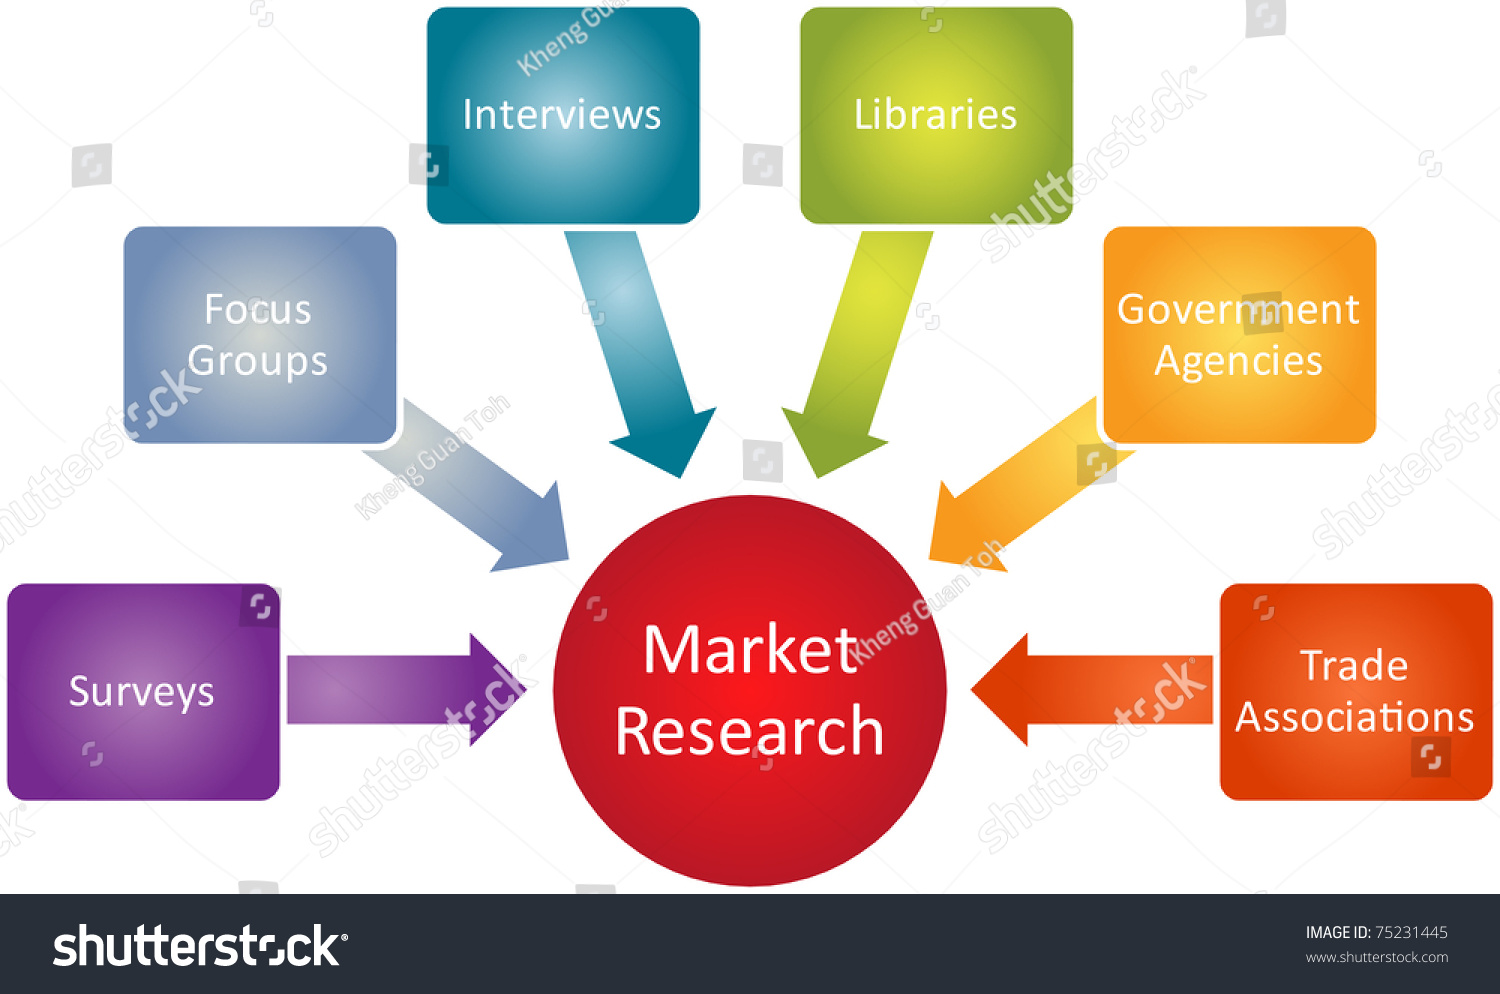 Market Research Business Diagram Management Strategy Stock Stock Photo Market Research Business Diagram Management Strategy Concept Chart Illustration  Stock Photo Market Research Business Diagram Management Strategy Concept Chart Illustration